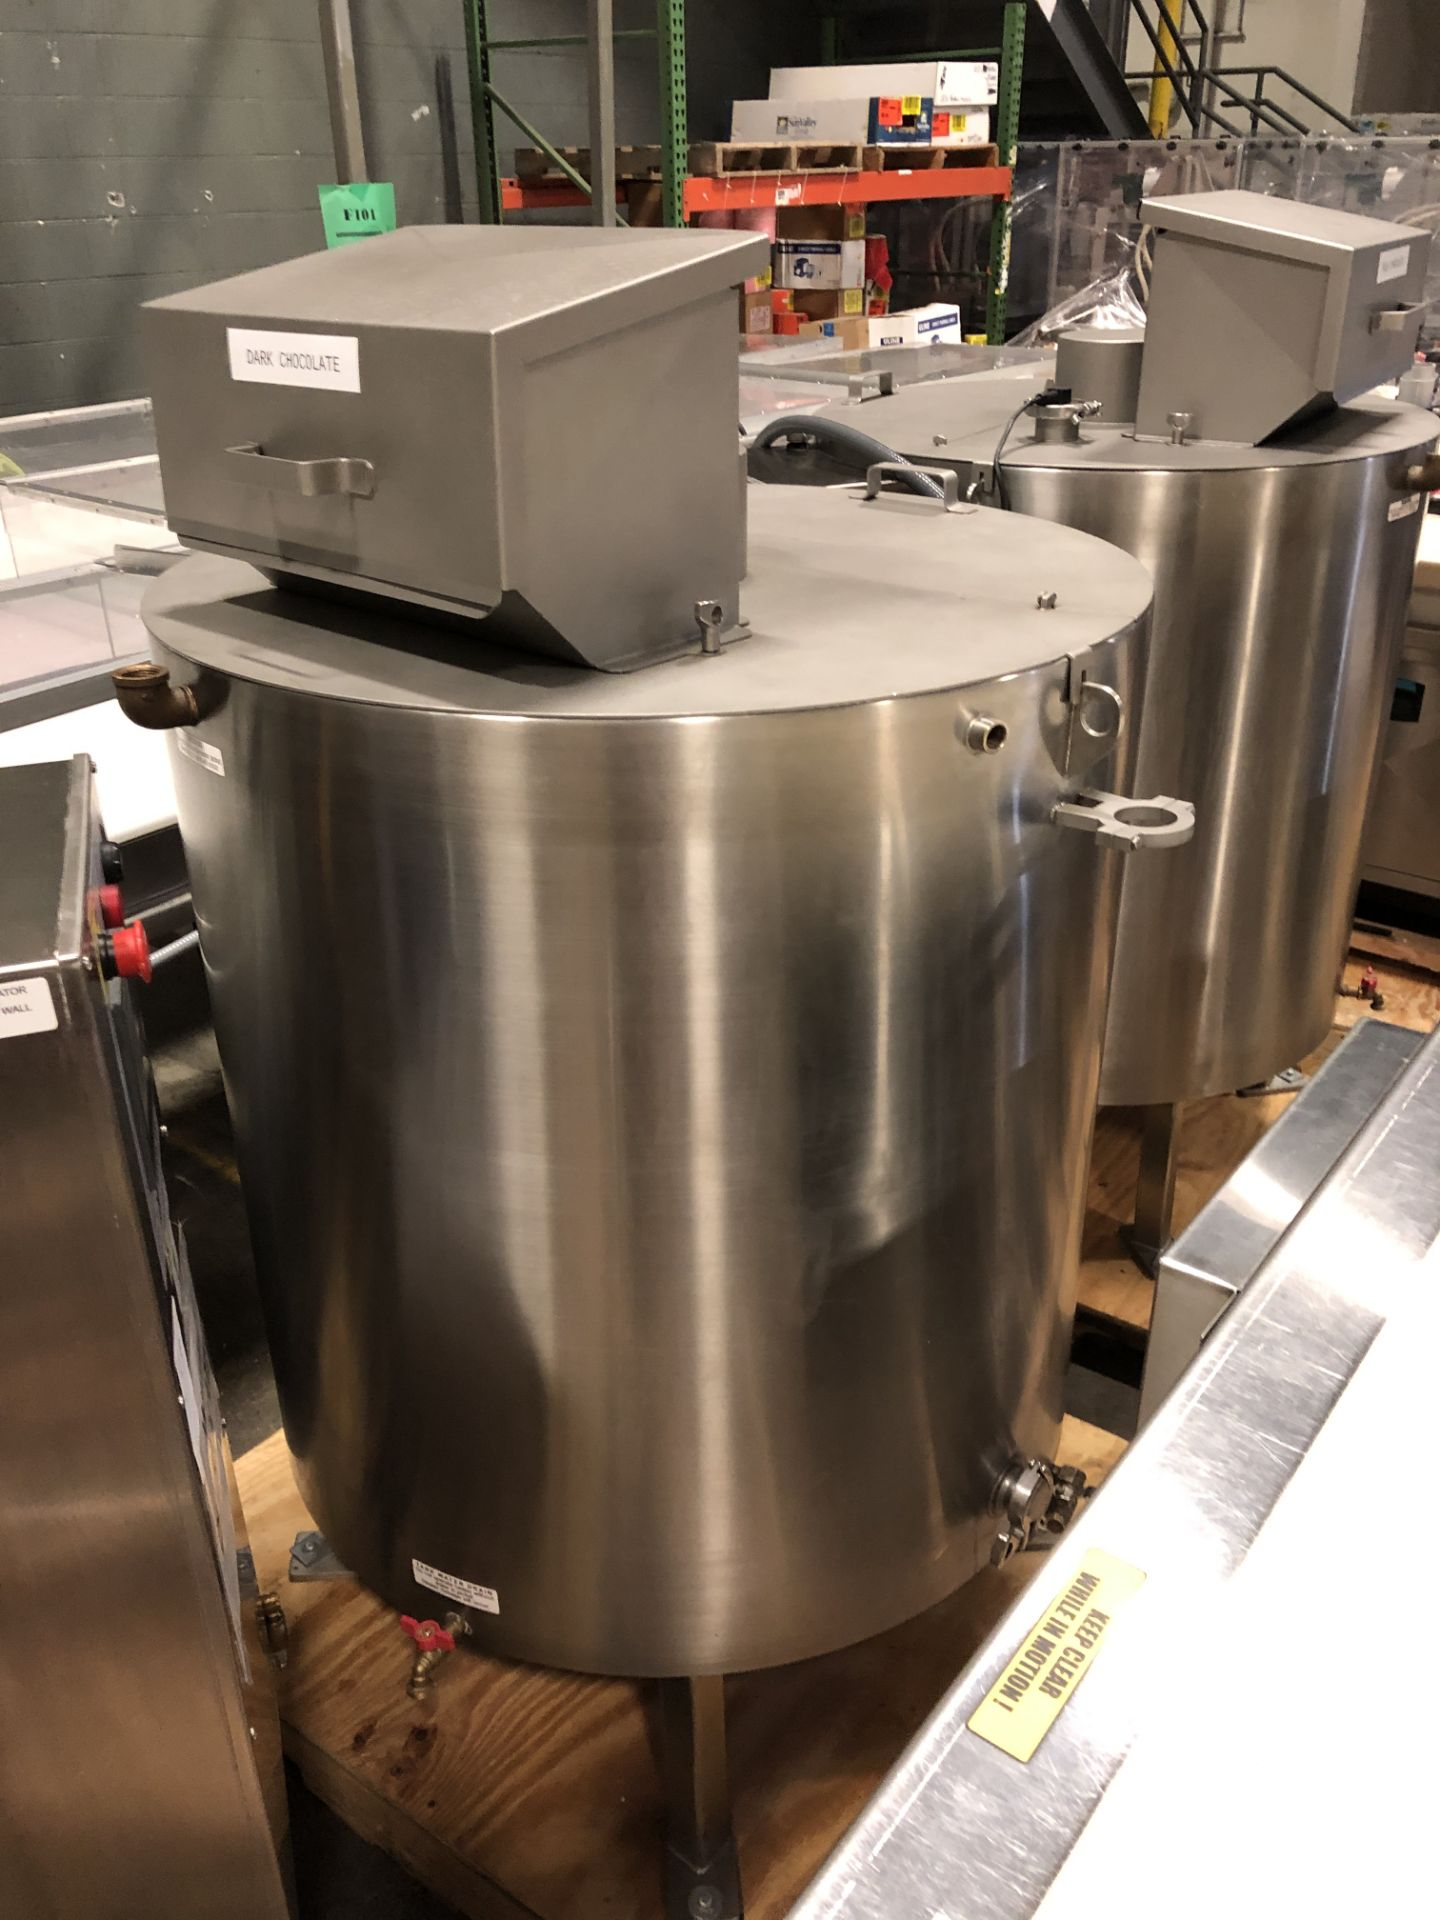 Lot 42 - Savage Stainless Steel 1250-lb Chocolate Melter, model 0974-36, with PLC touchscreen controls,